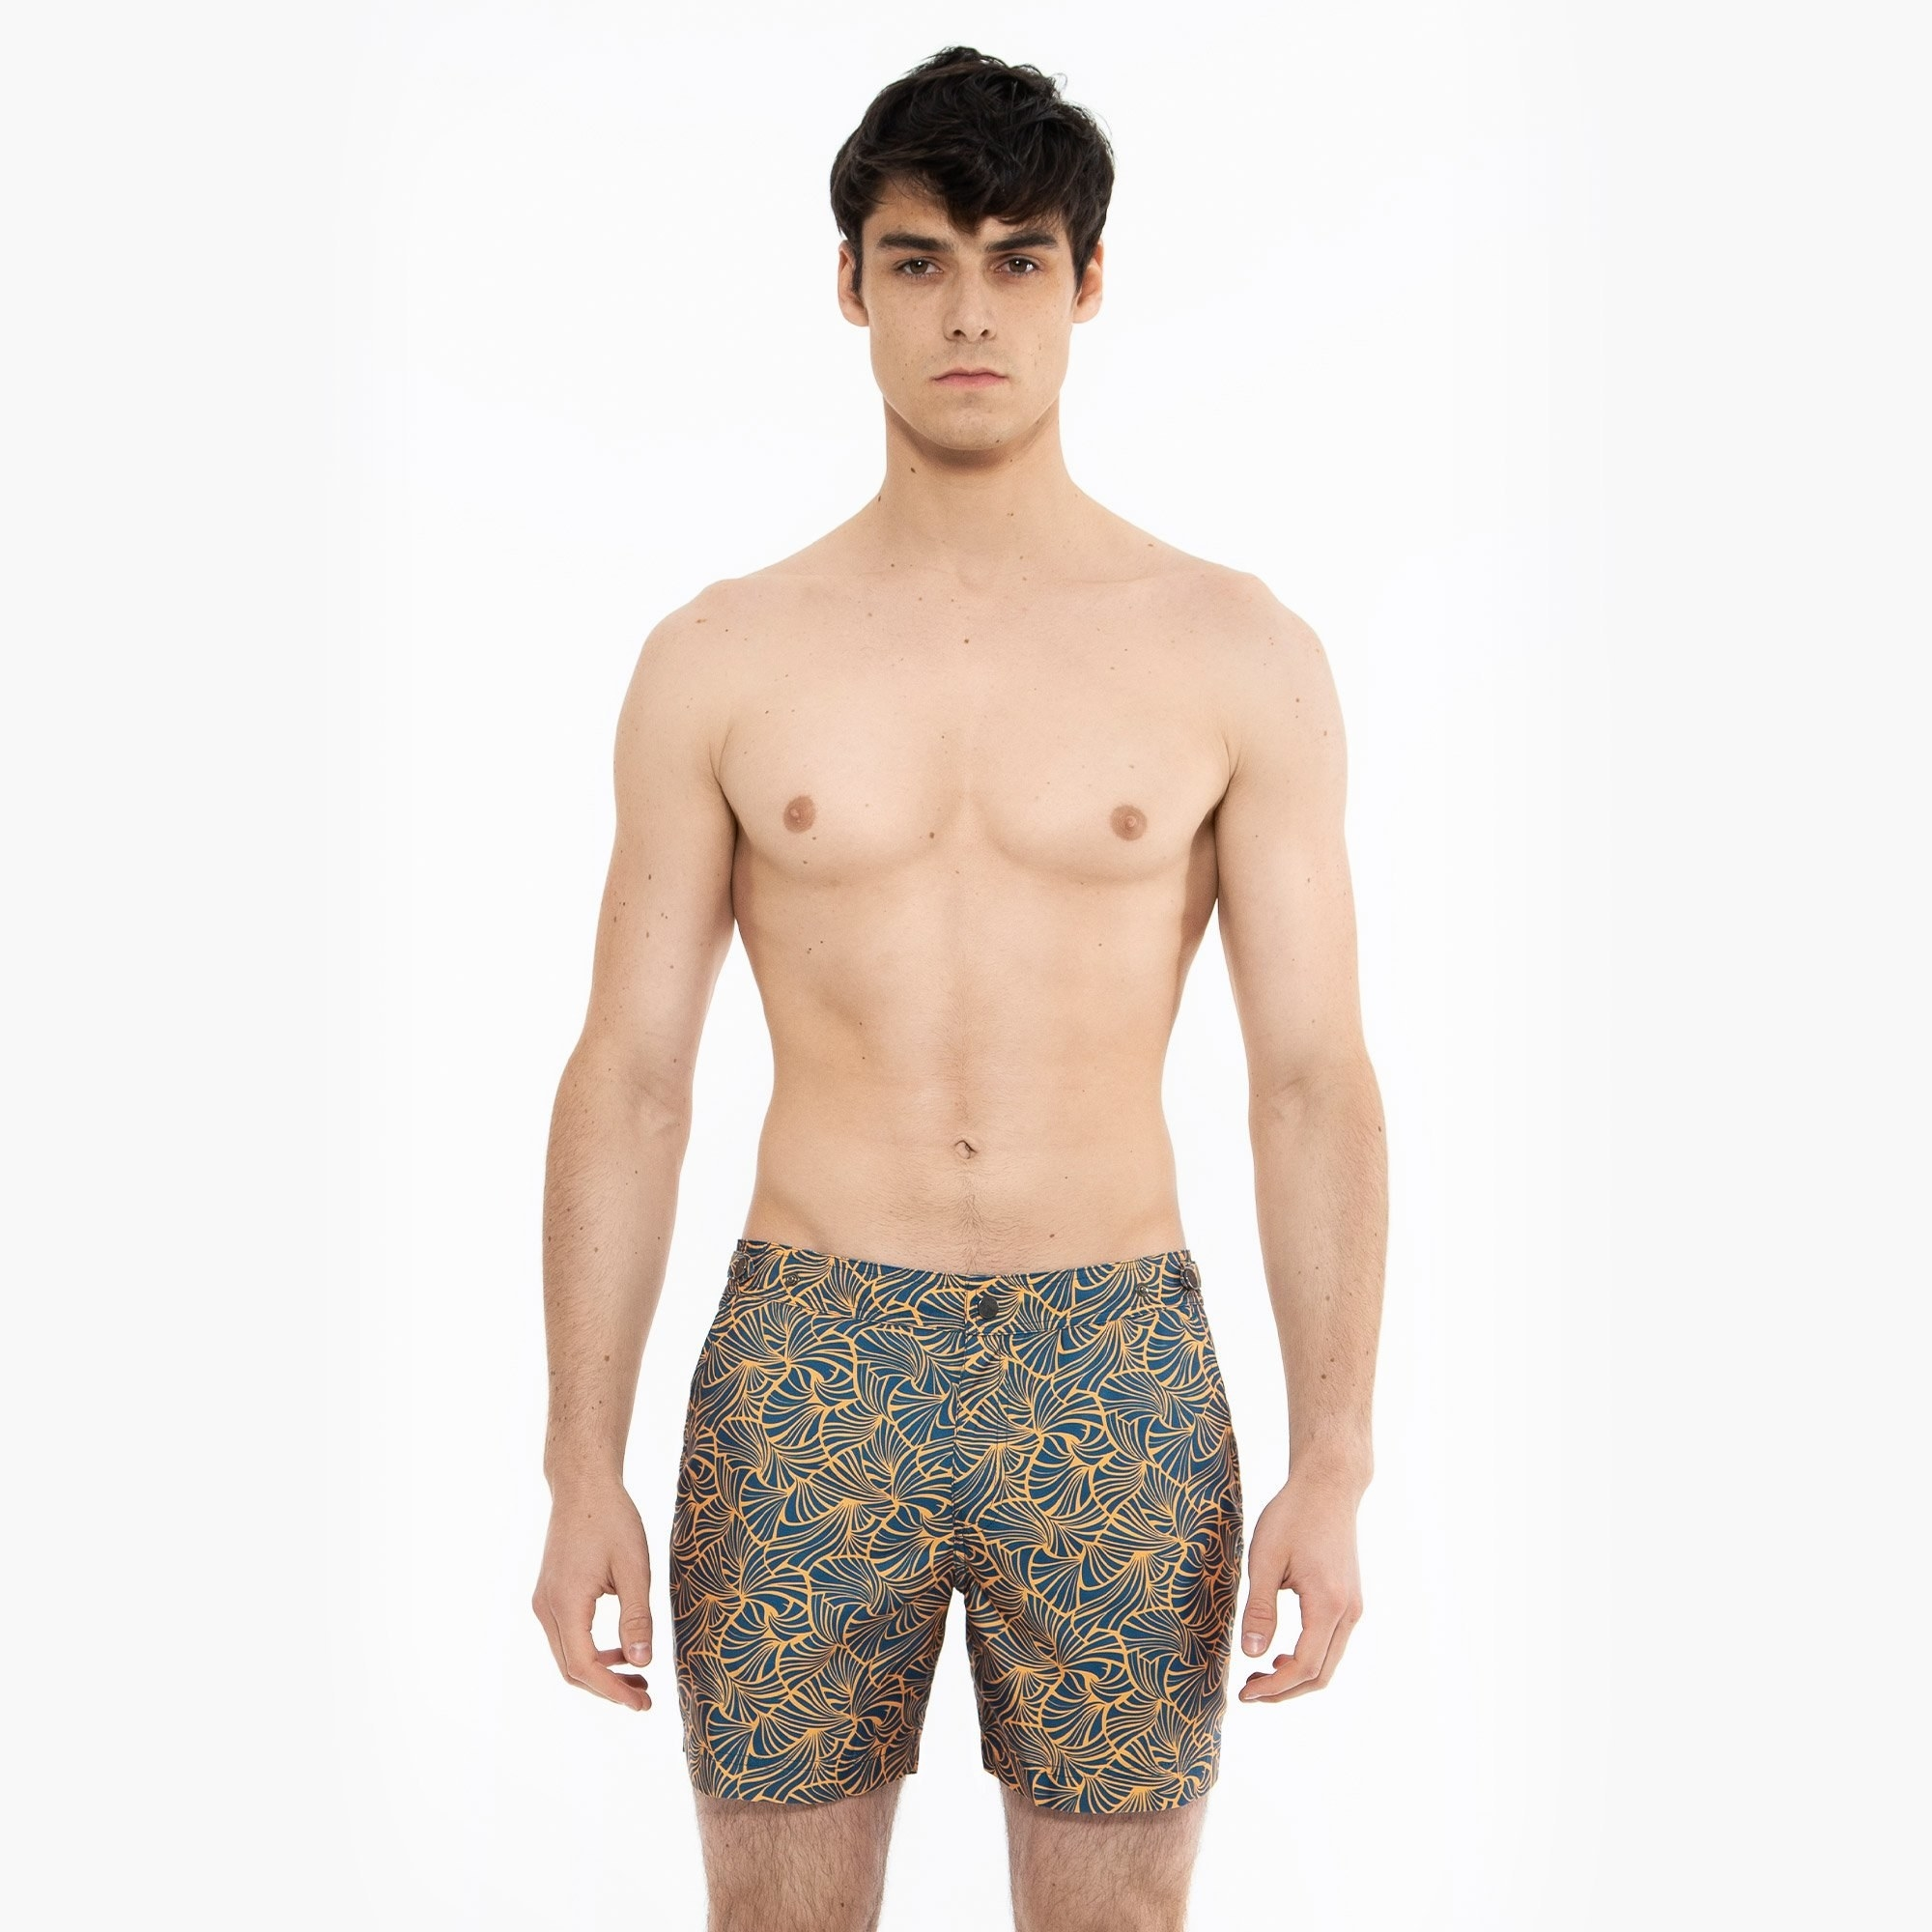 model wearing the mid-thigh length swim trunks with gold seashell print